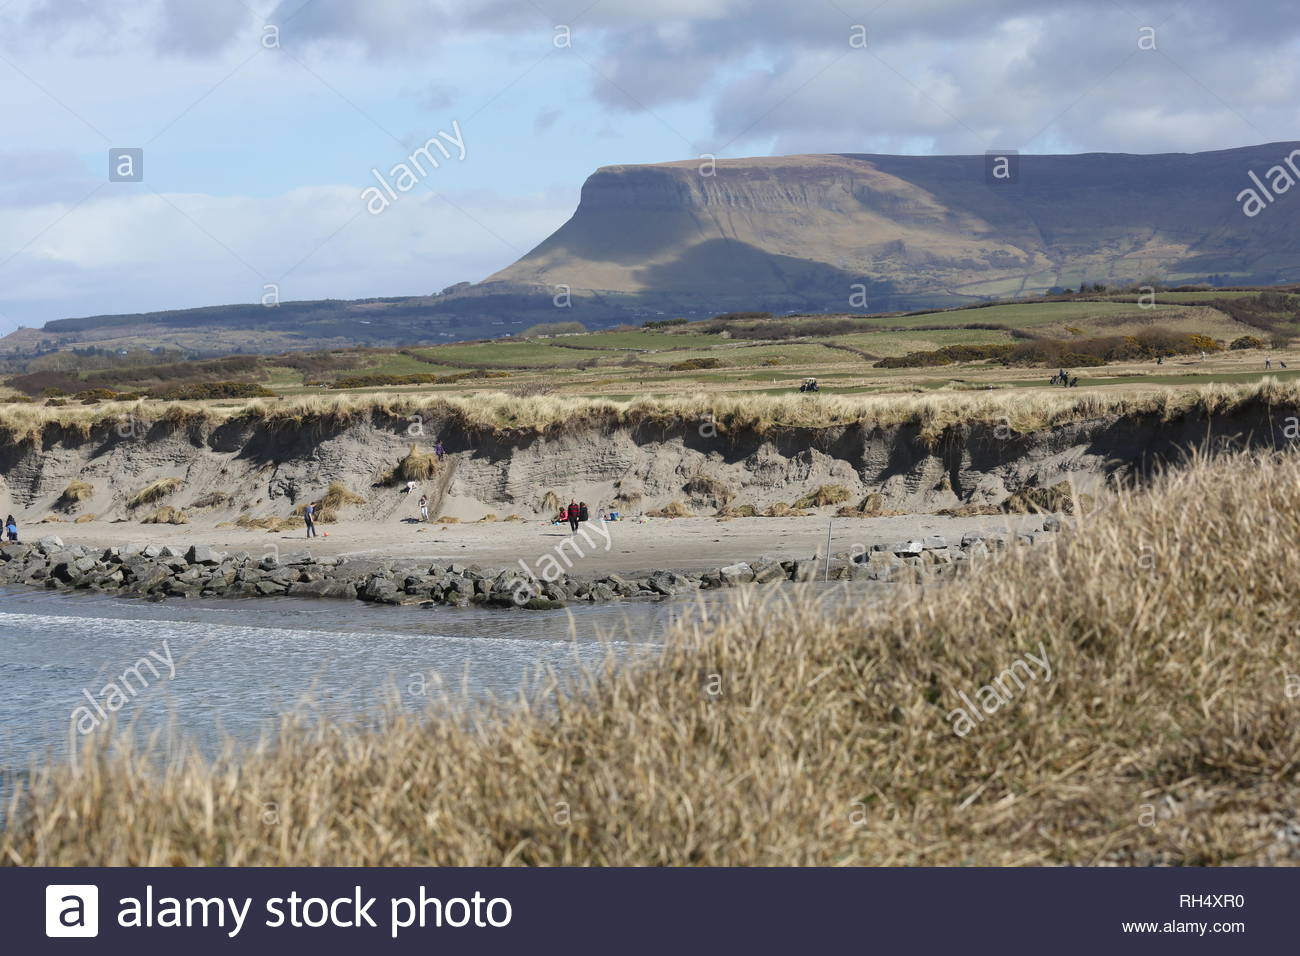 A view of Ben Bulben in Sligo, Ireland on a beautiful day - Stock Image